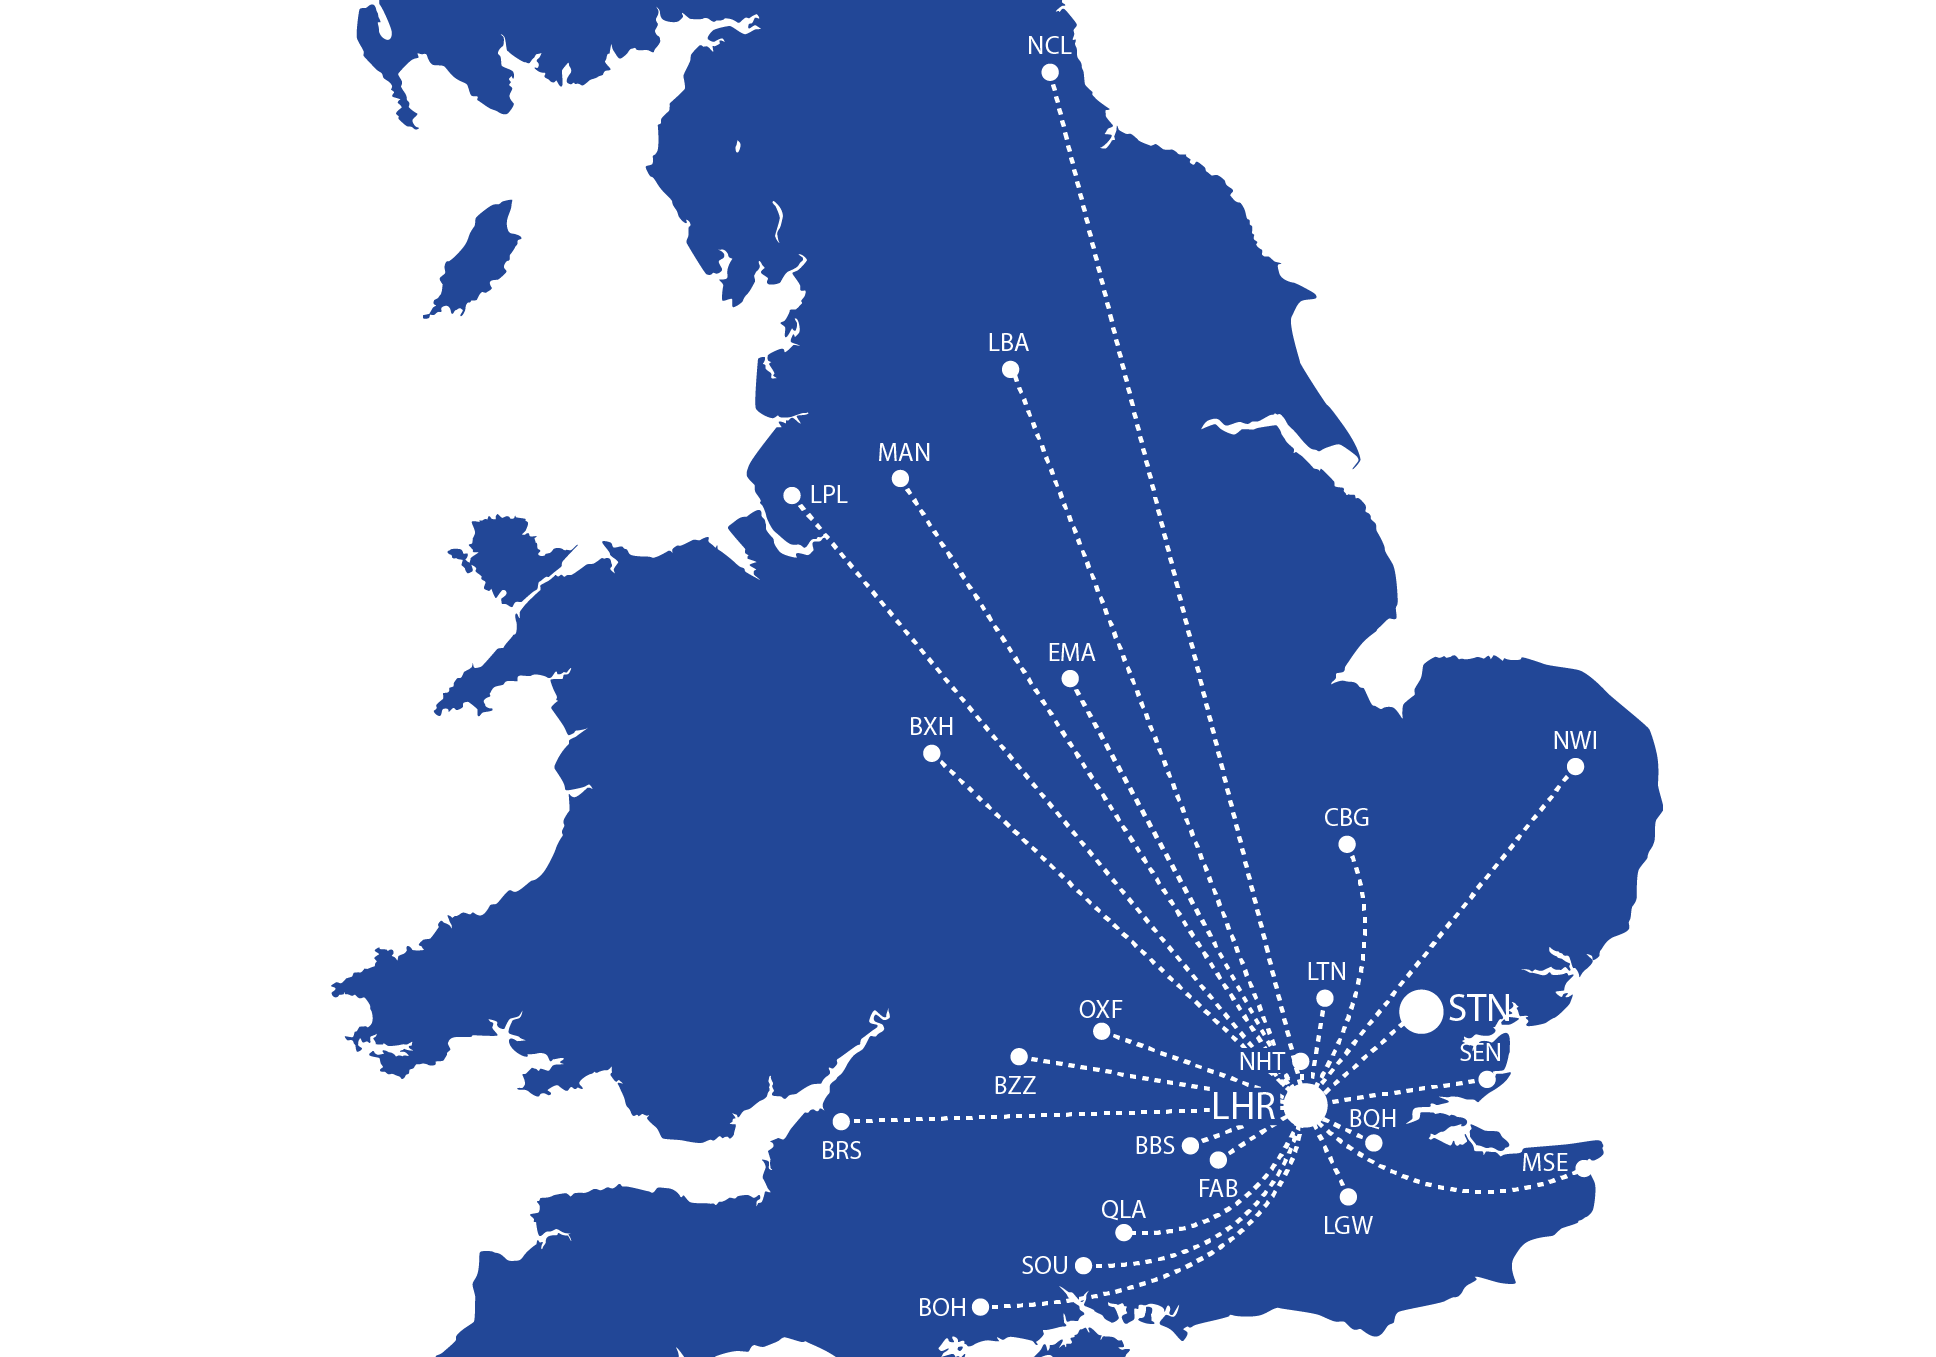 Royalblue Delivery Map - 24 airports nationwide